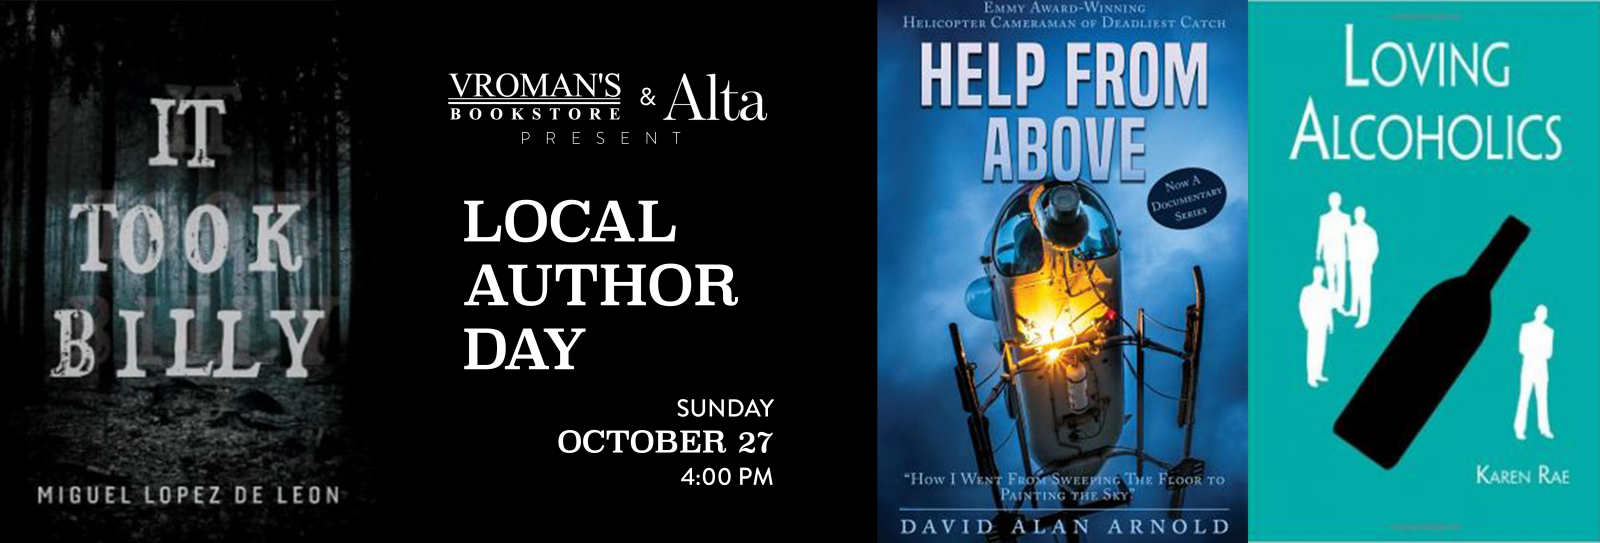 Local Author Day Sunday October 27 at 4om